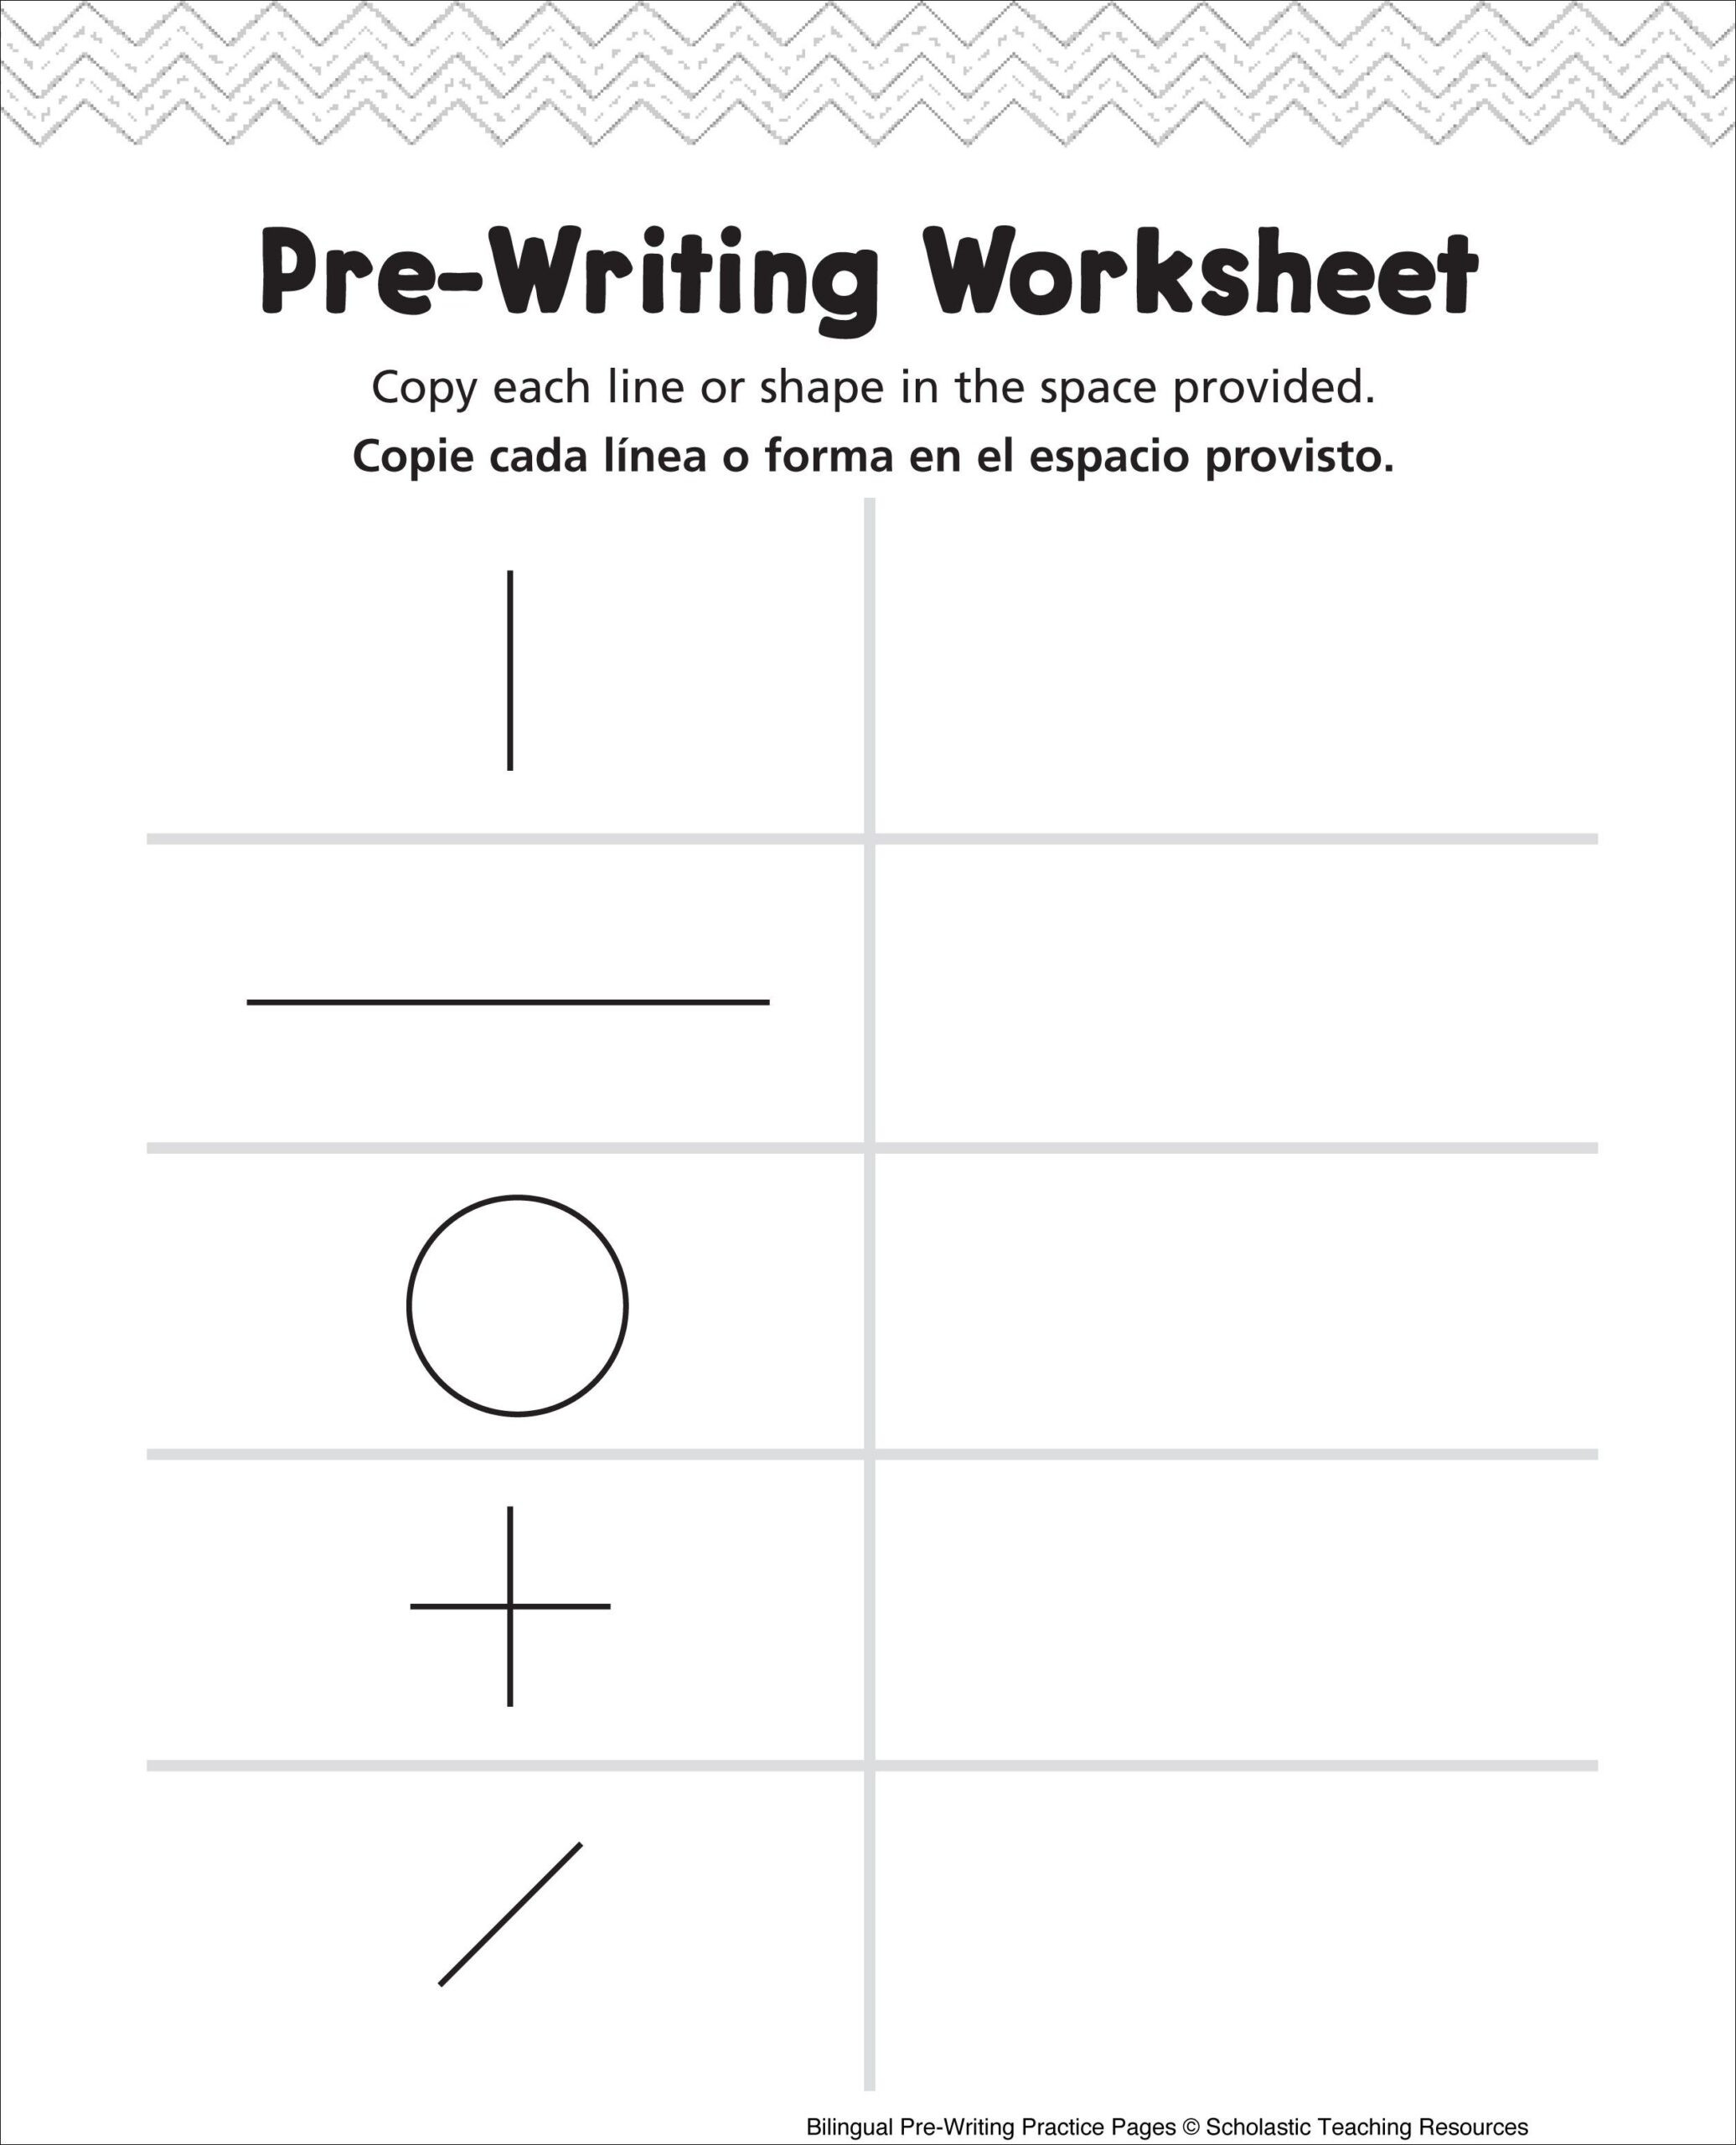 Writing Worksheets 7th Grade Pre Writing Worksheet Bilingual Practice Handwriting Shapes